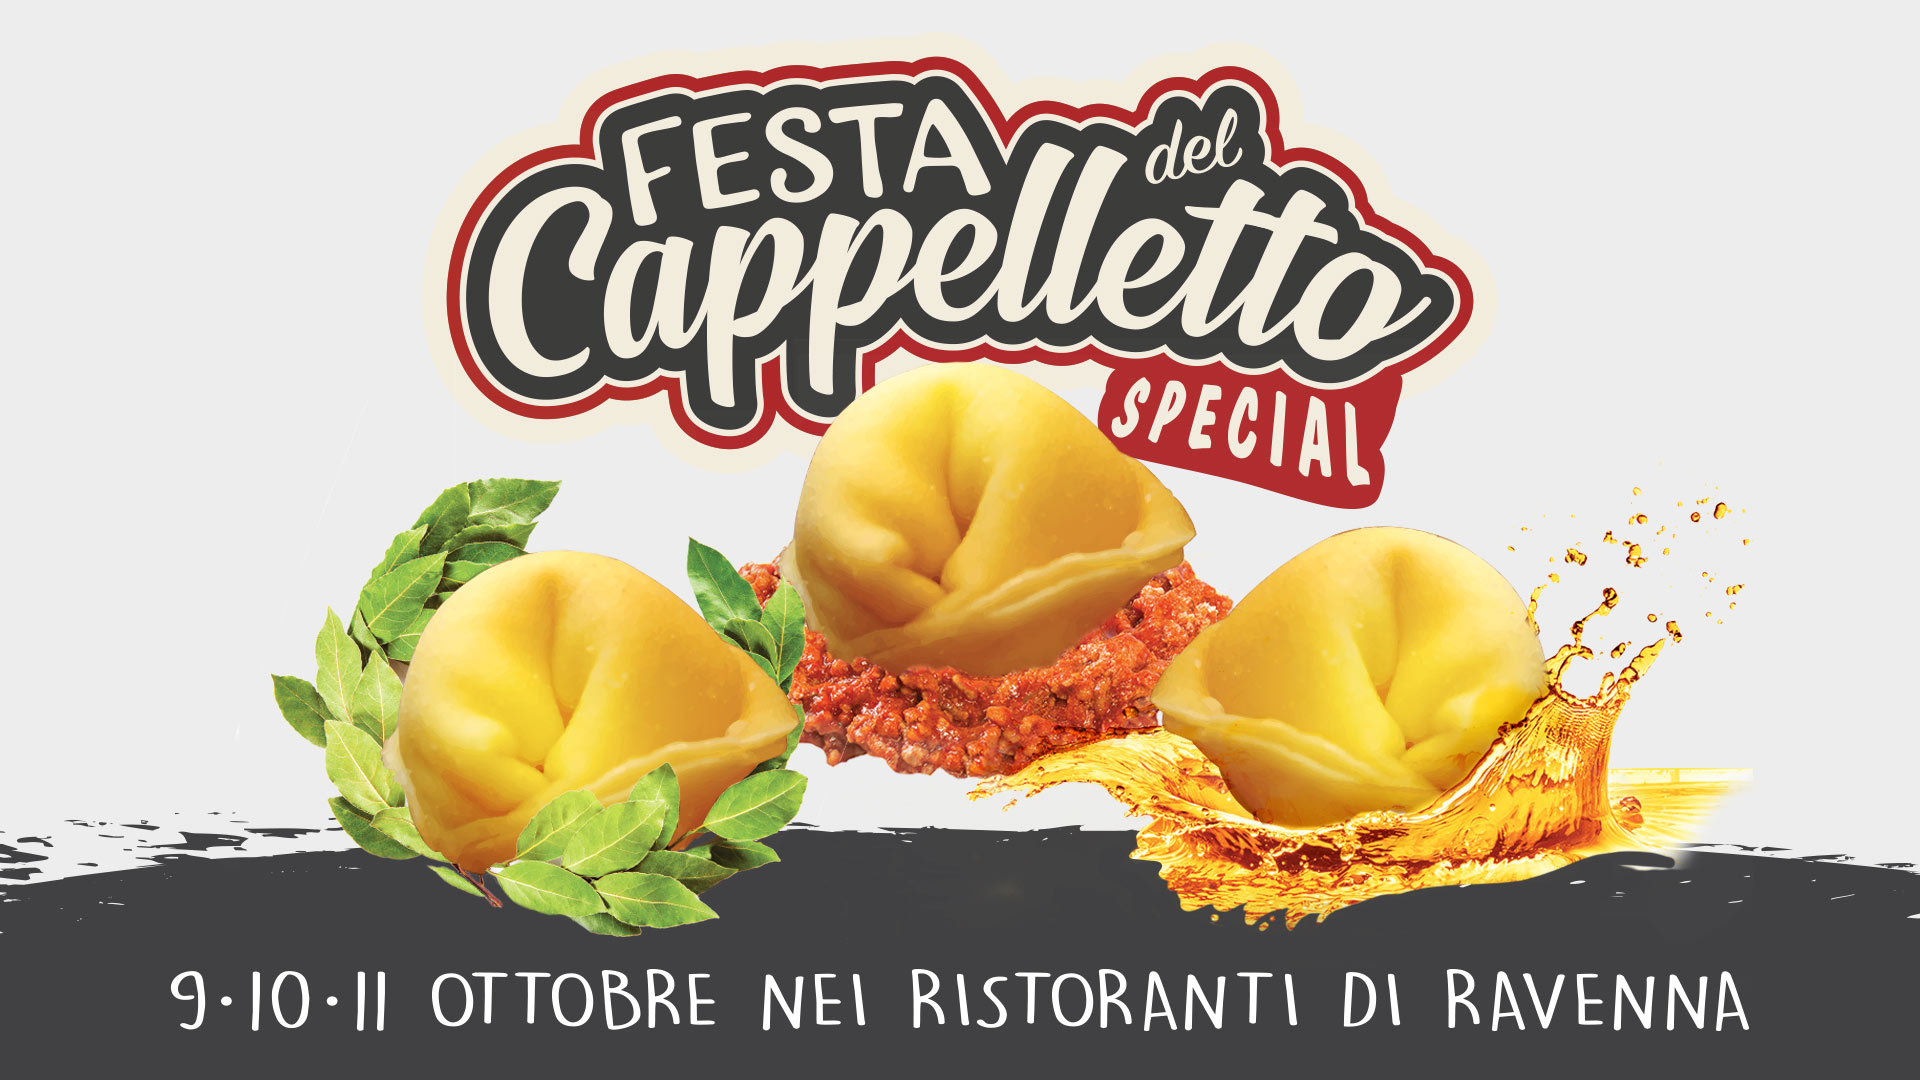 Cappelletto-Landing-Page-logo